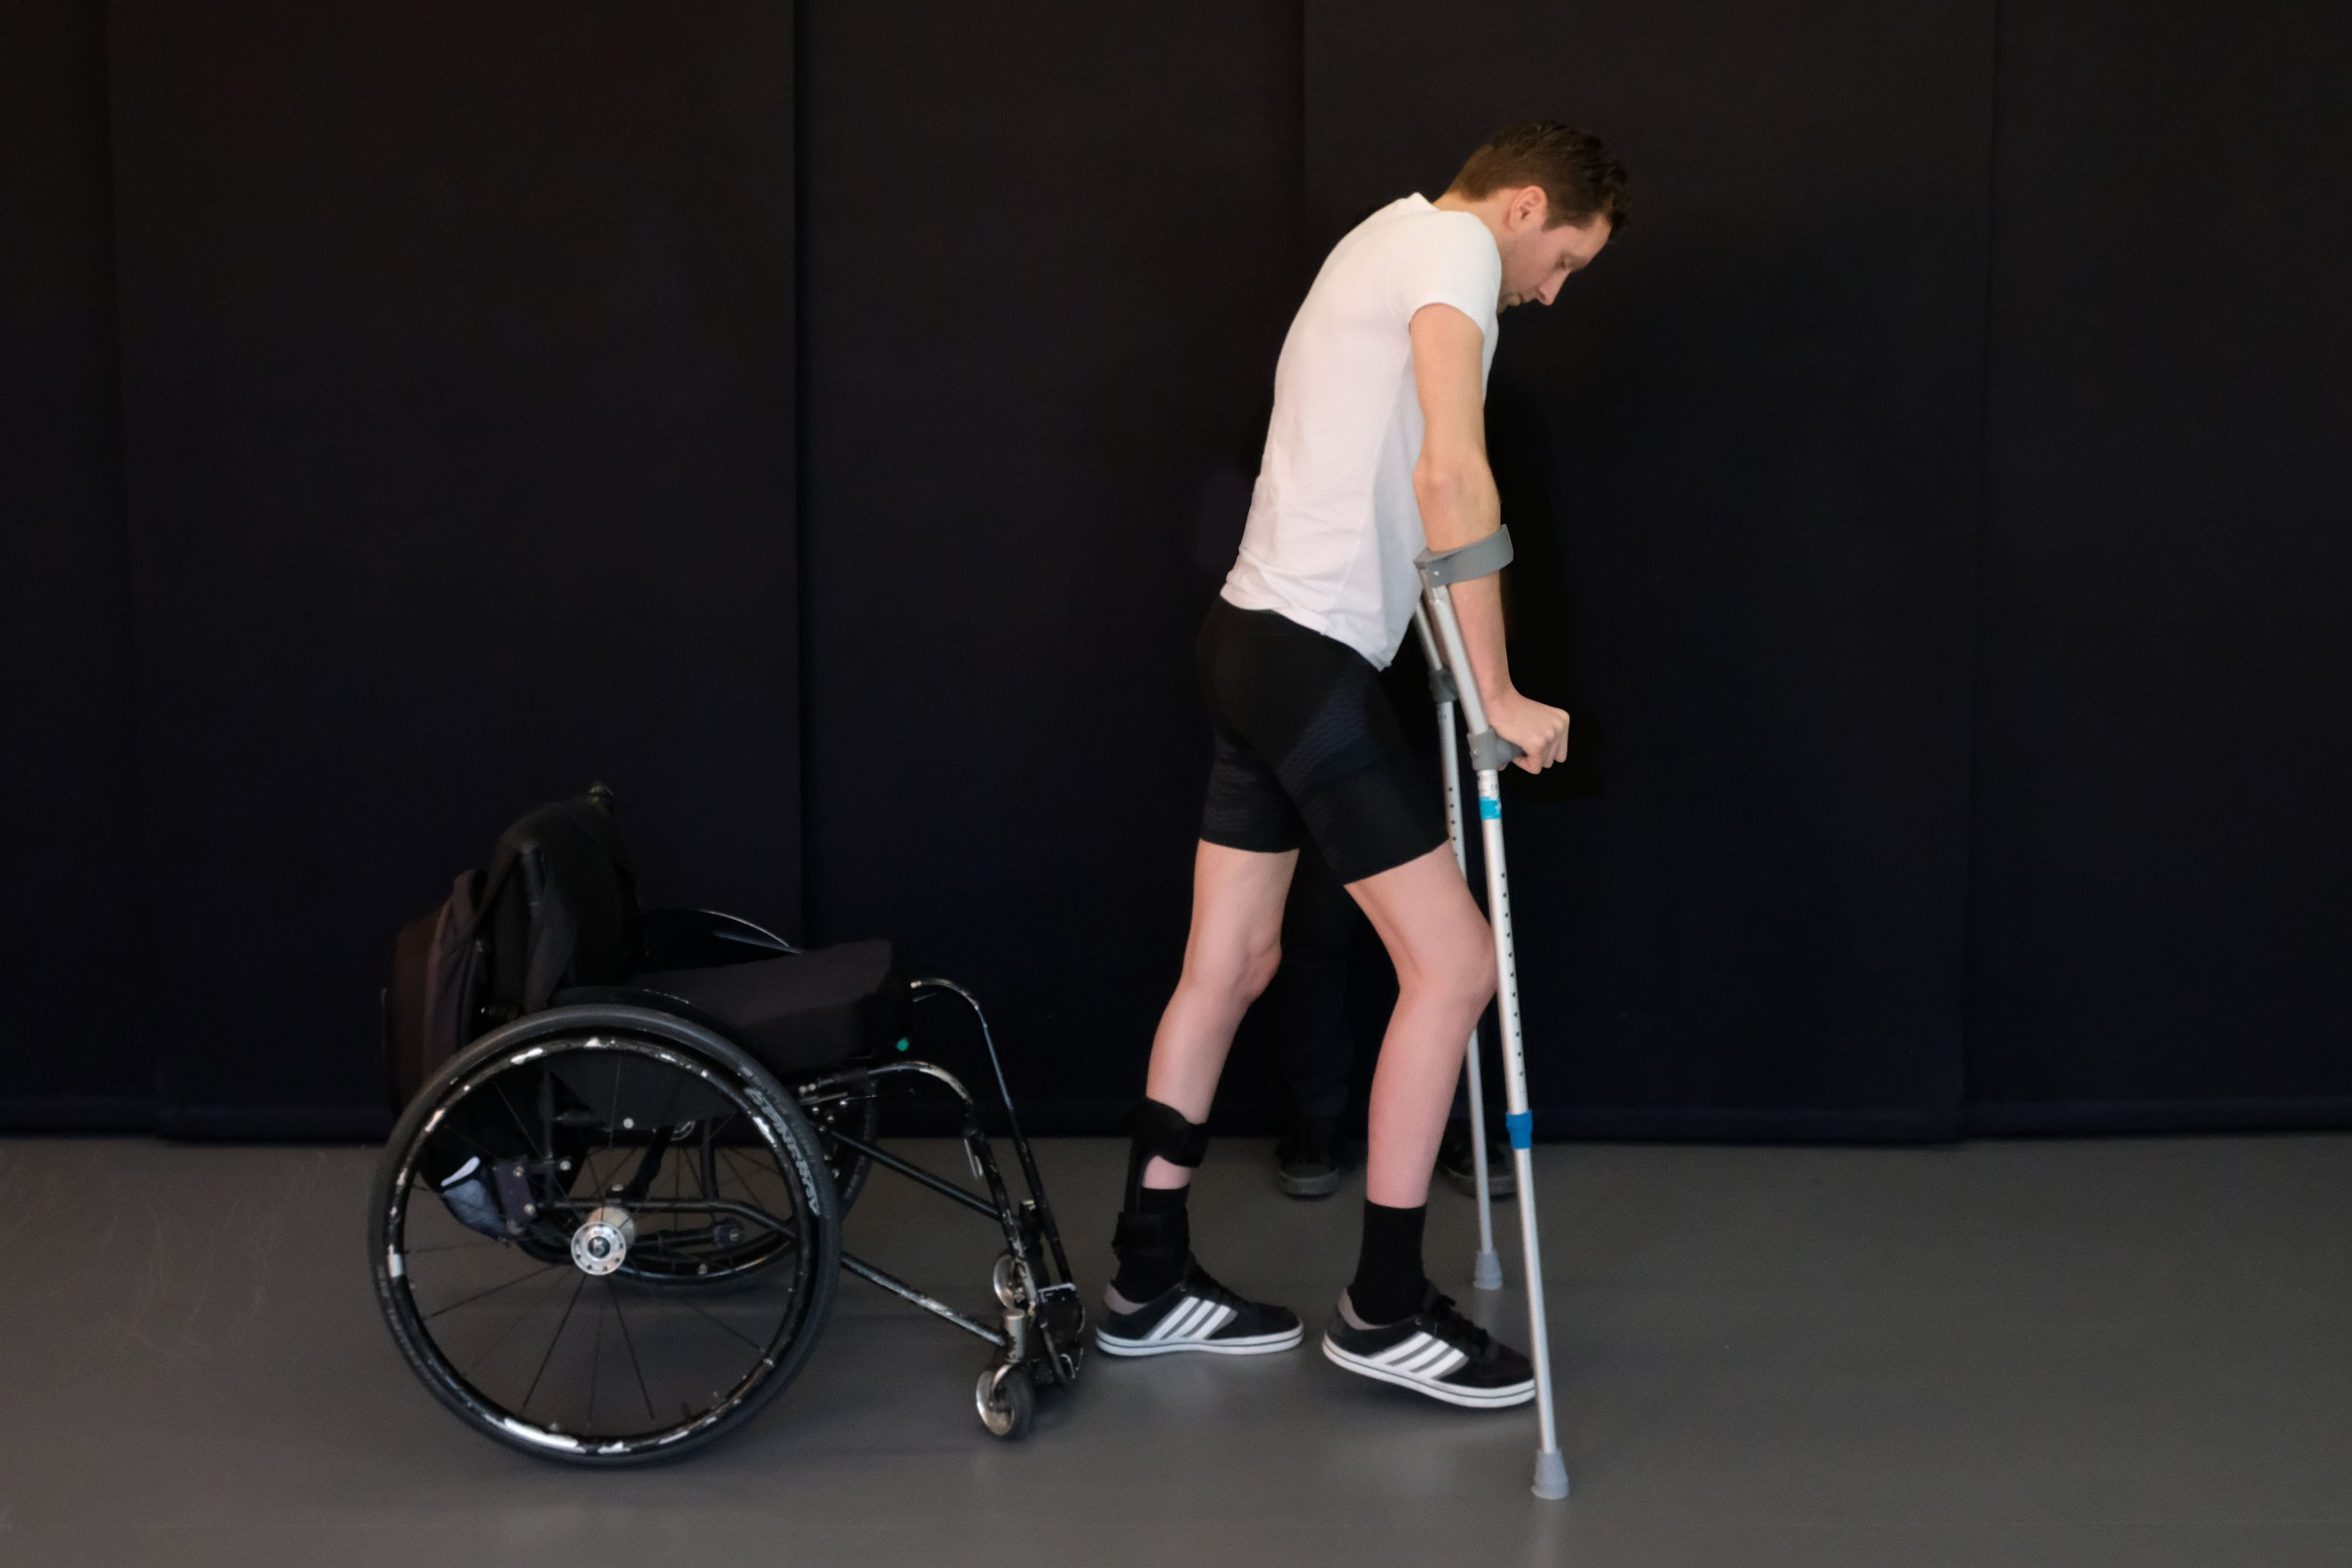 Paralysed patients able to walk again after breakthrough treatment